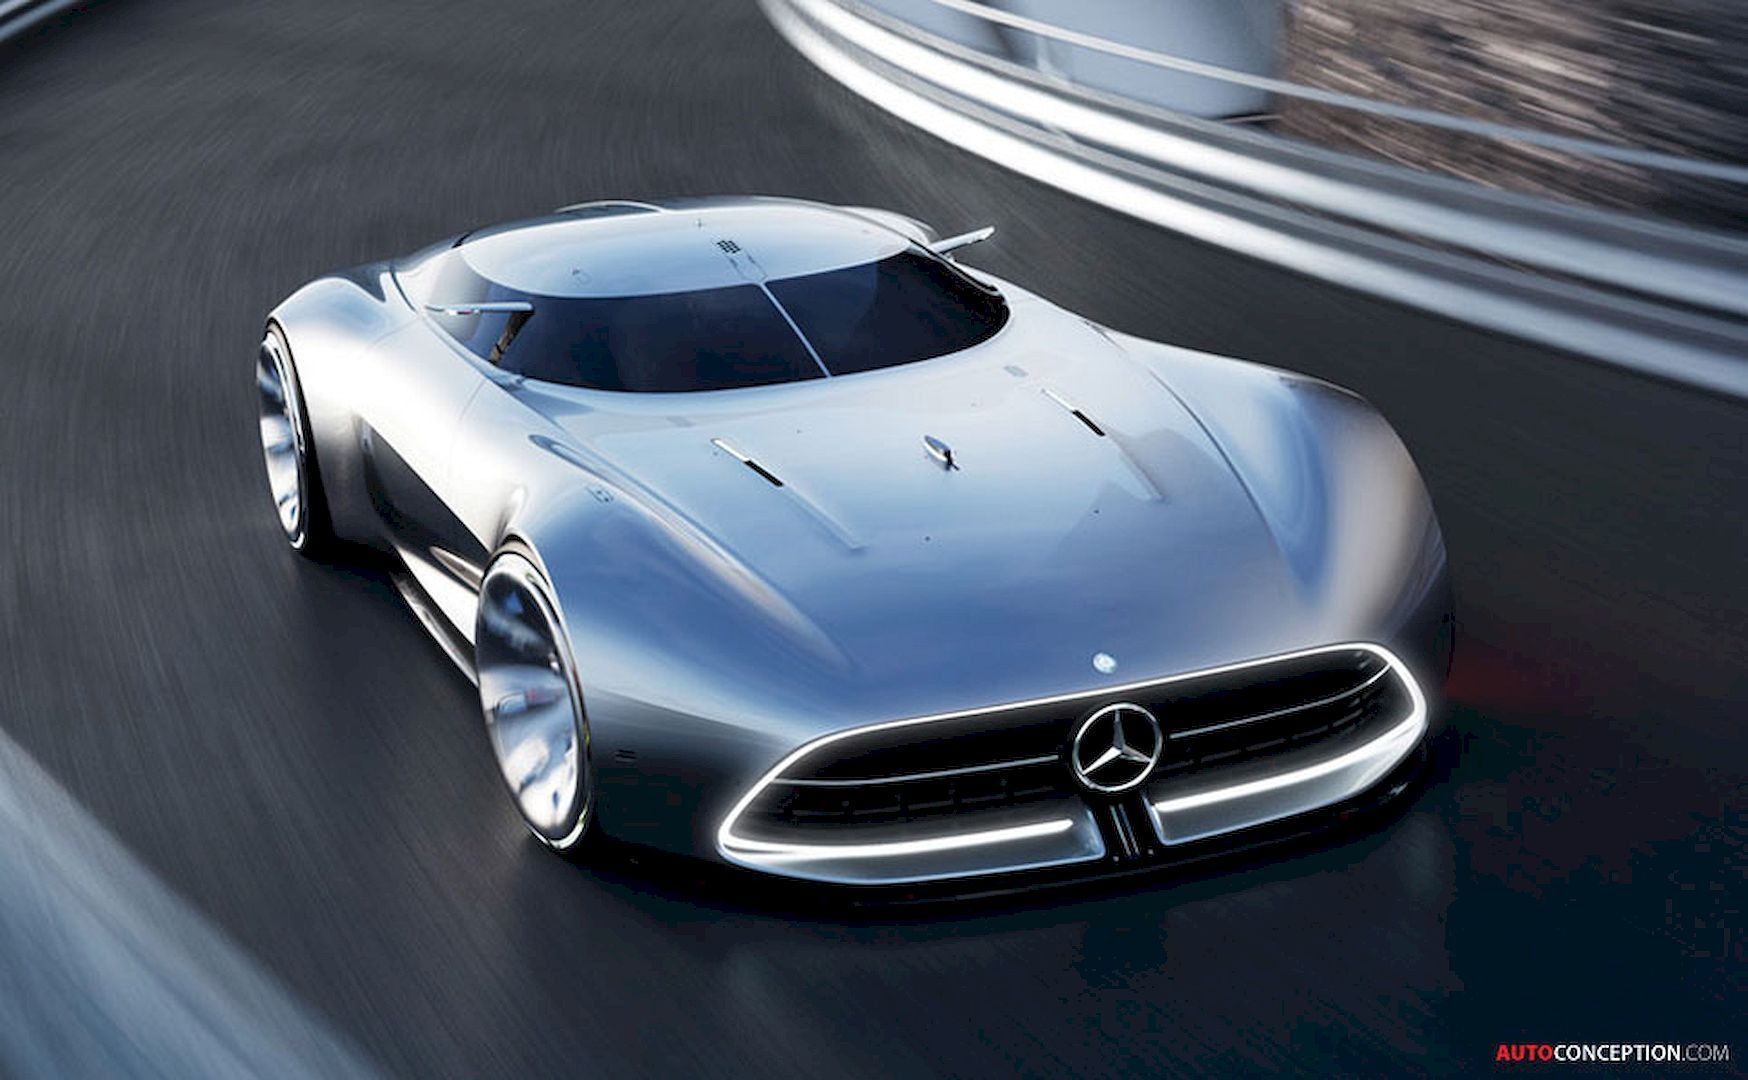 Top Cars to Look Out For In 2020 Futuristic